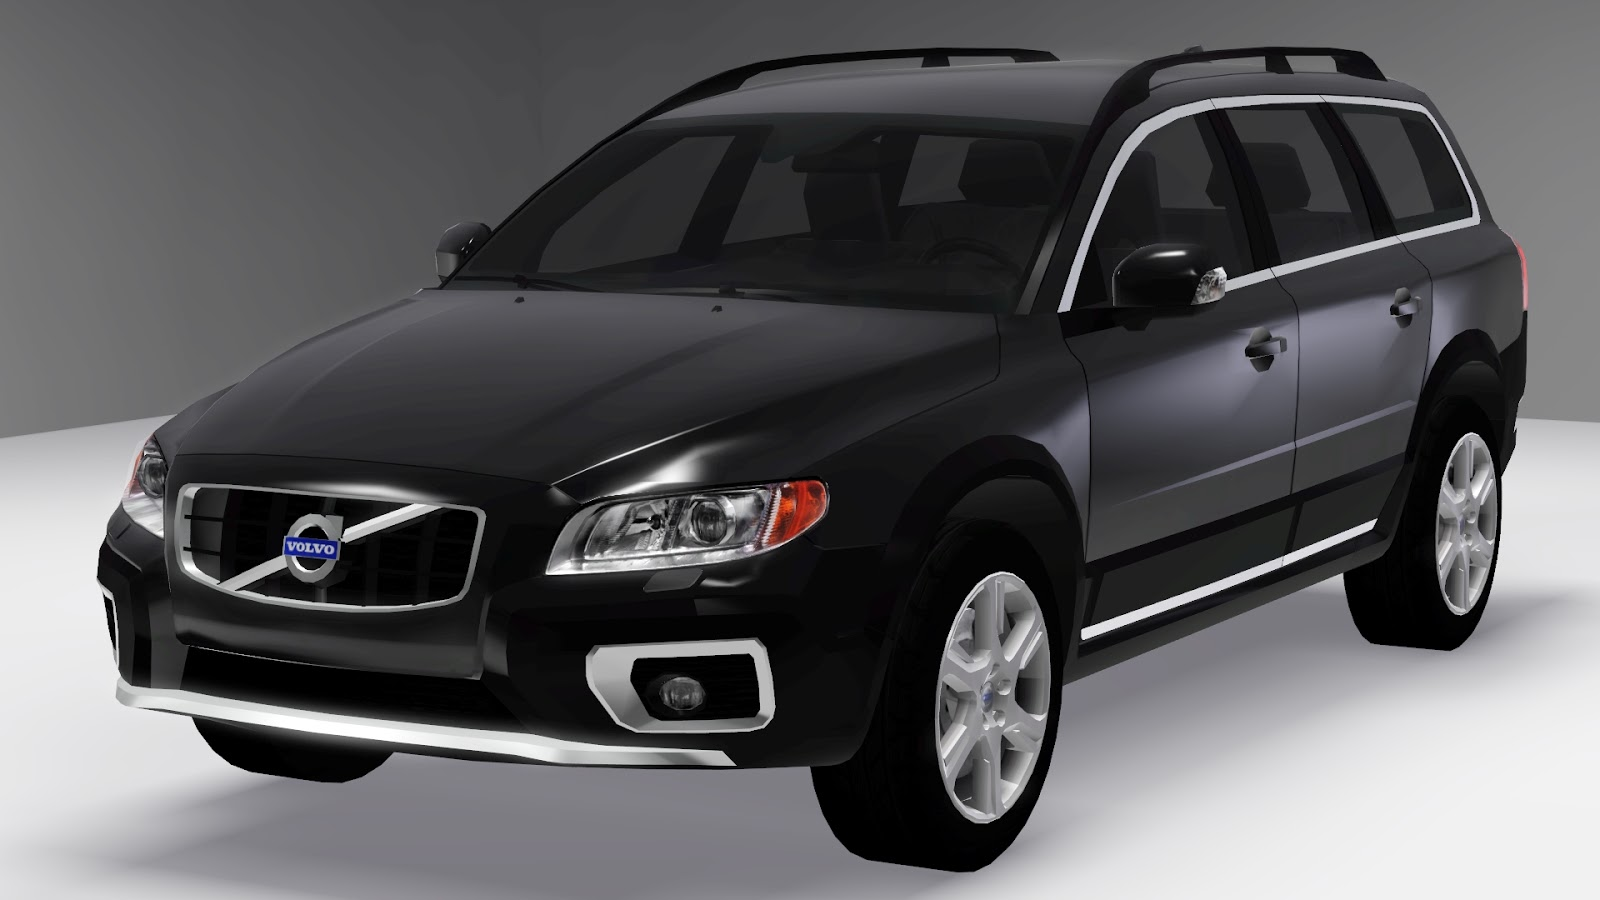 my sims 3 blog 2013 volvo xc70 by fresh prince. Black Bedroom Furniture Sets. Home Design Ideas